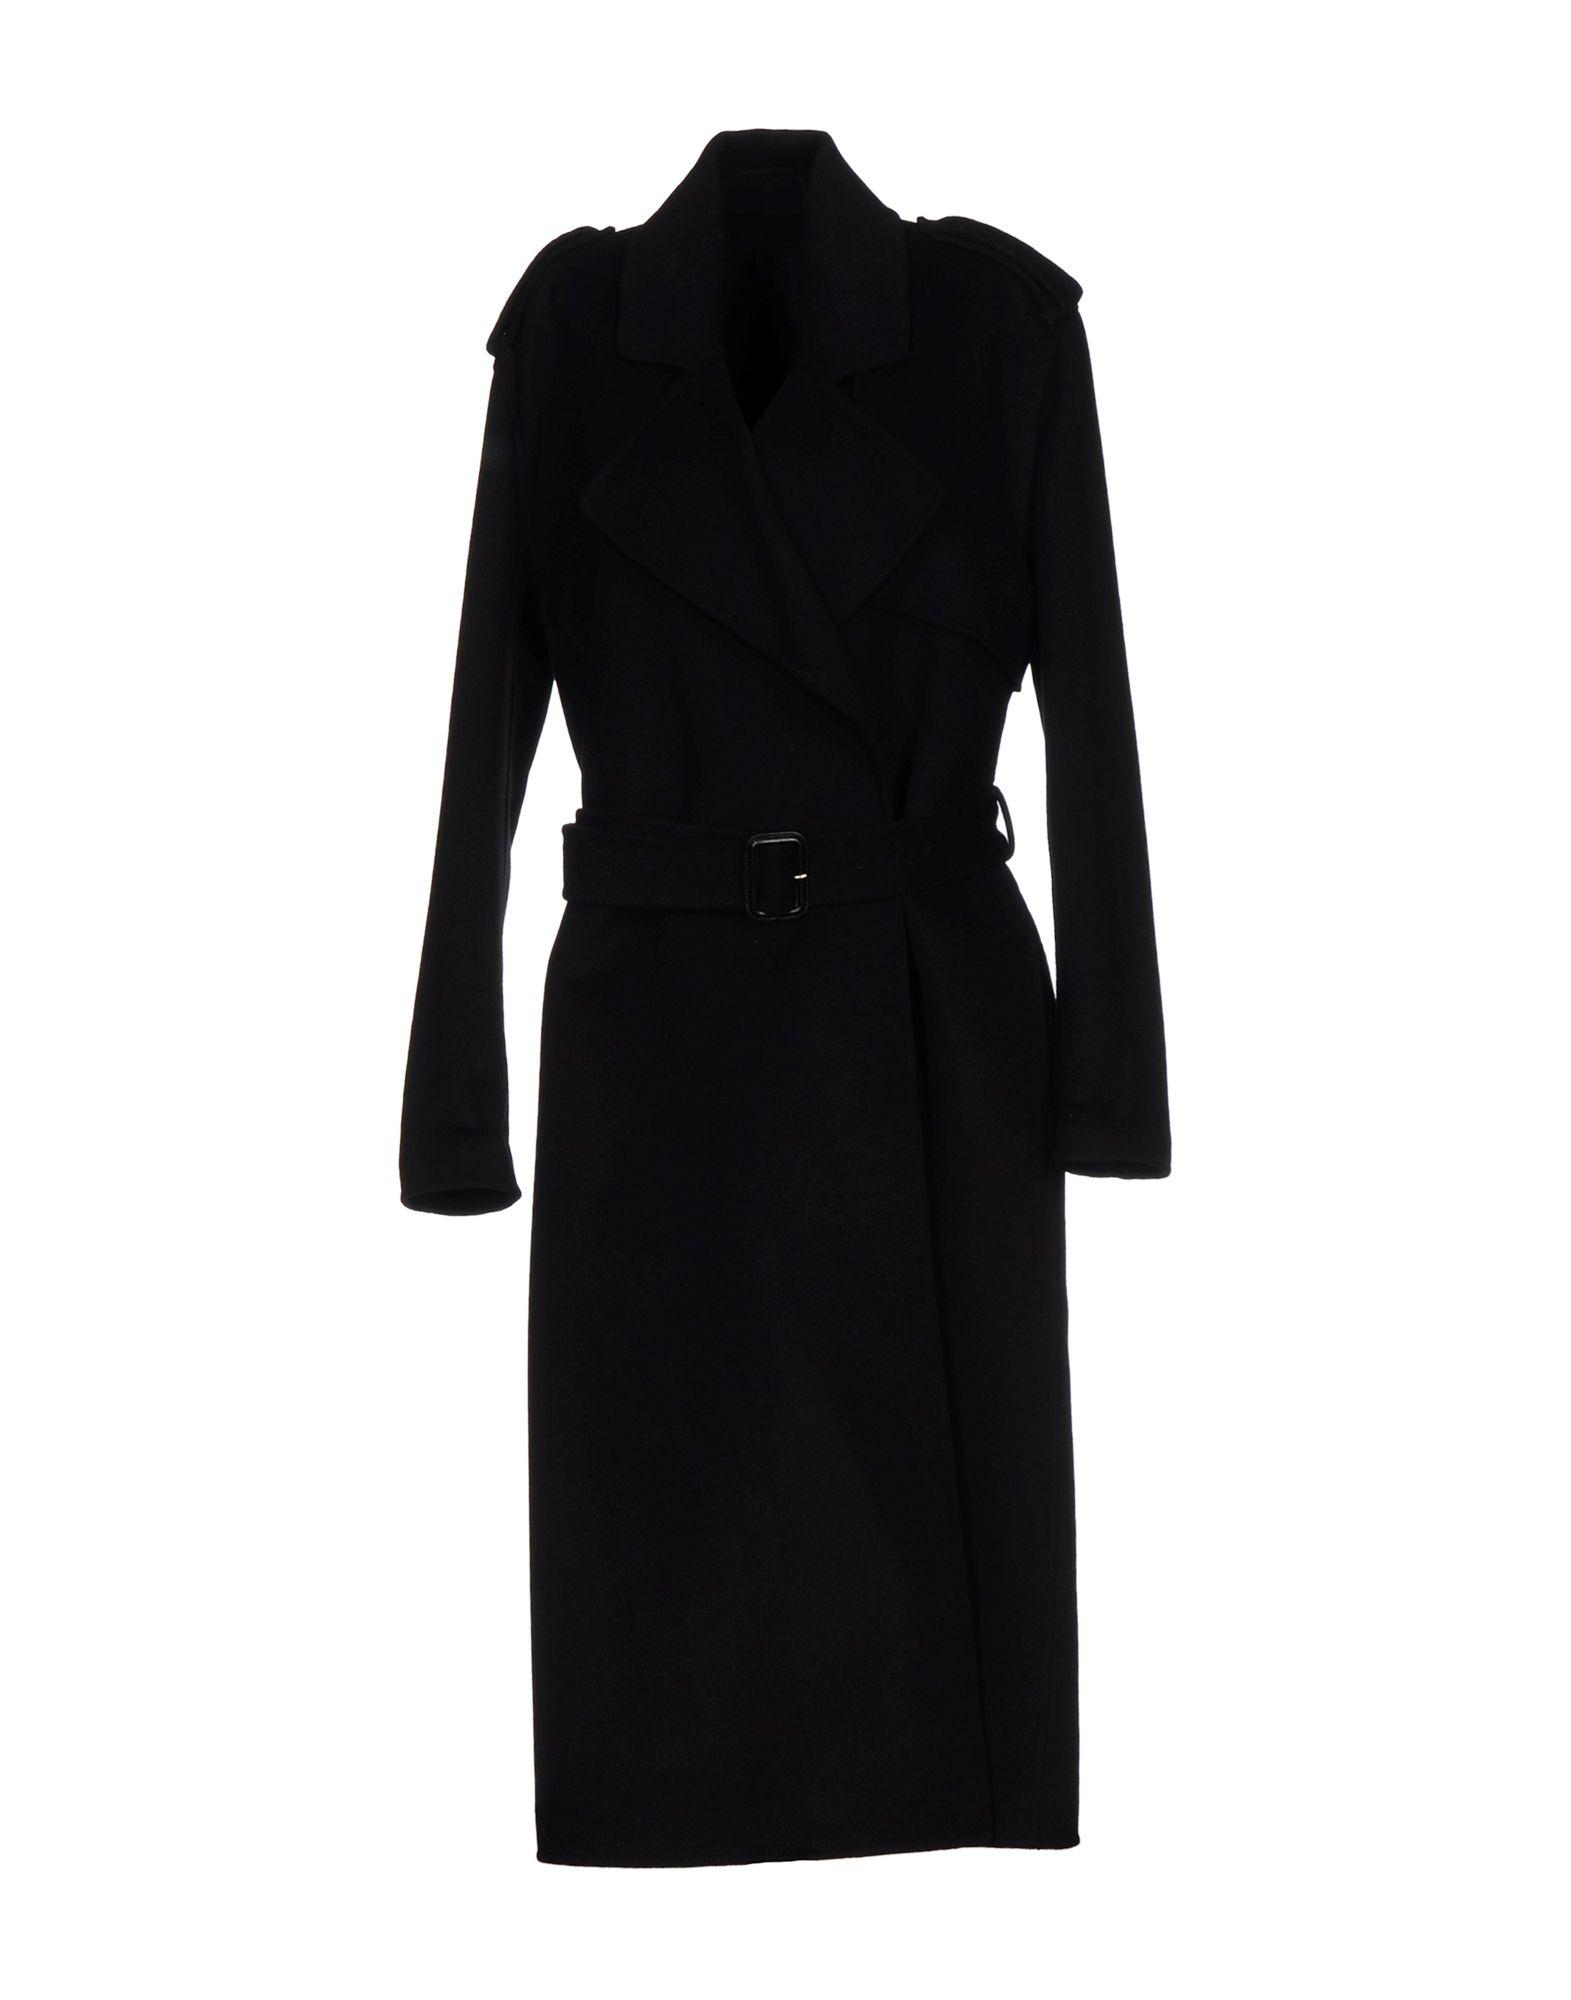 Hotel Particulier Coats In Black